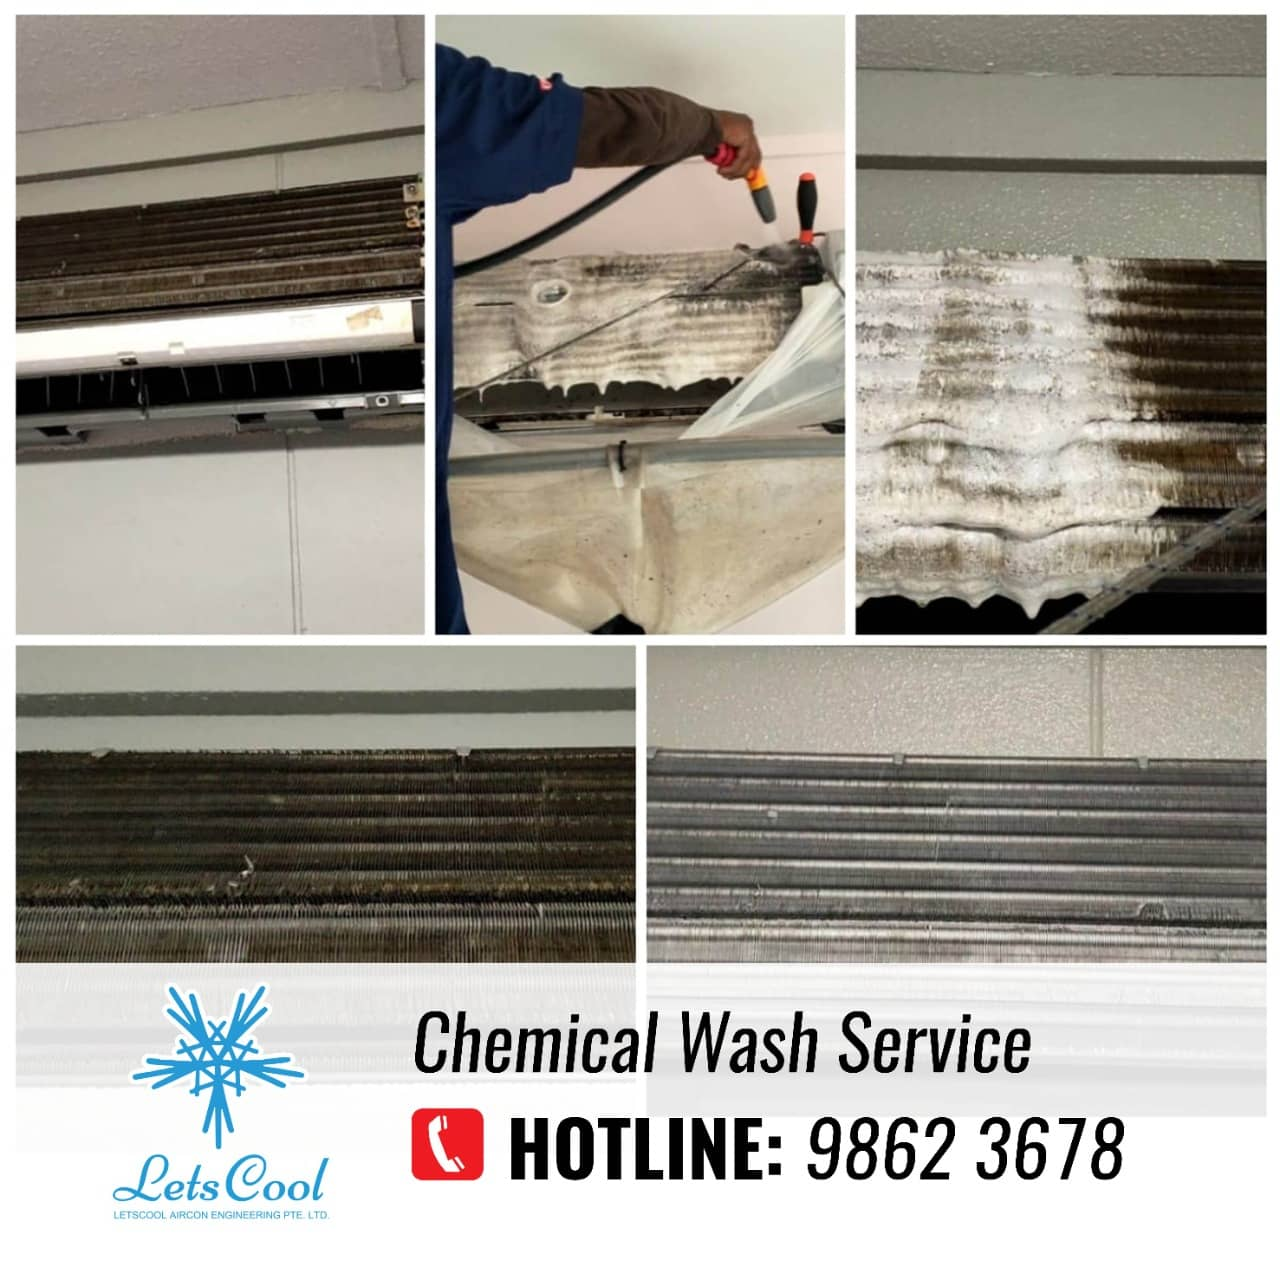 chemical wash service